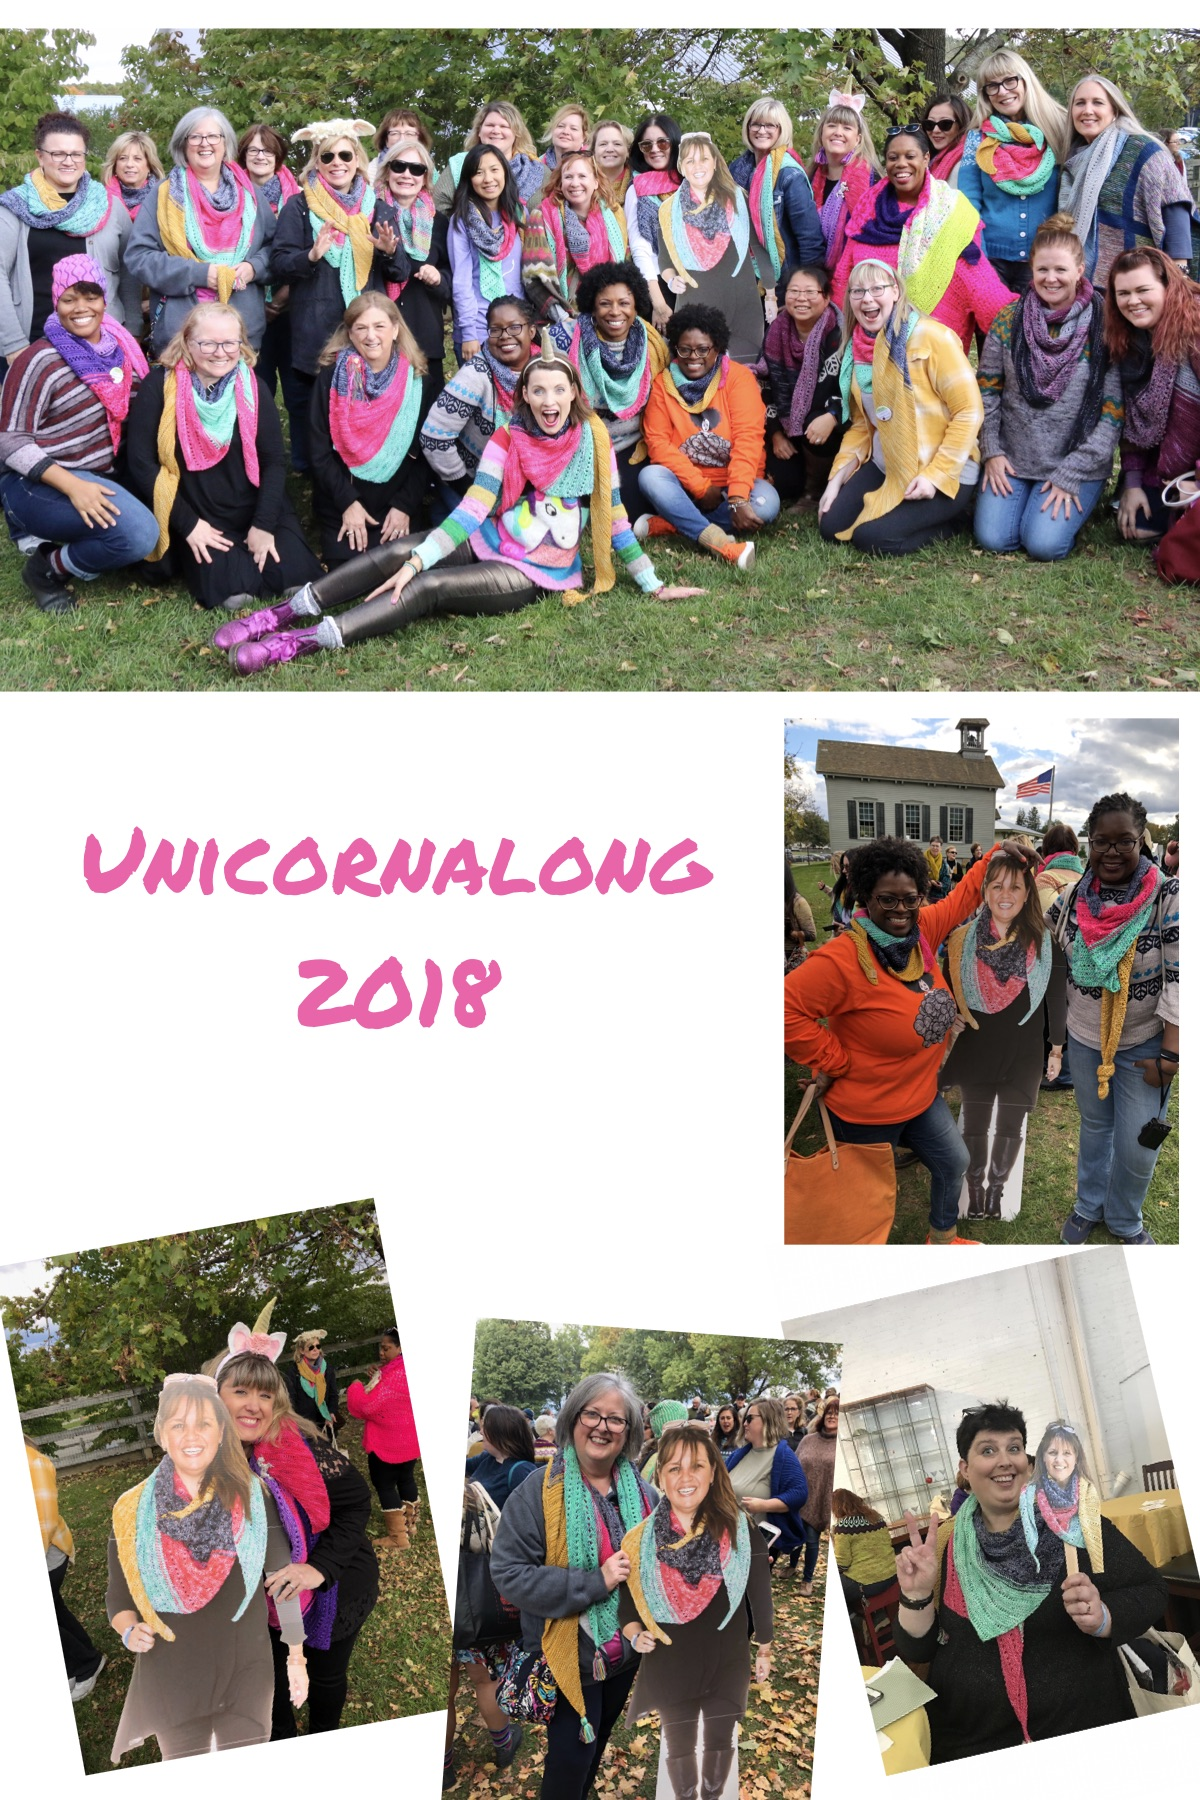 Unicornalong_At_NY_Sheep_and_wool_festival_Rhinebeck_2018_7.jpg